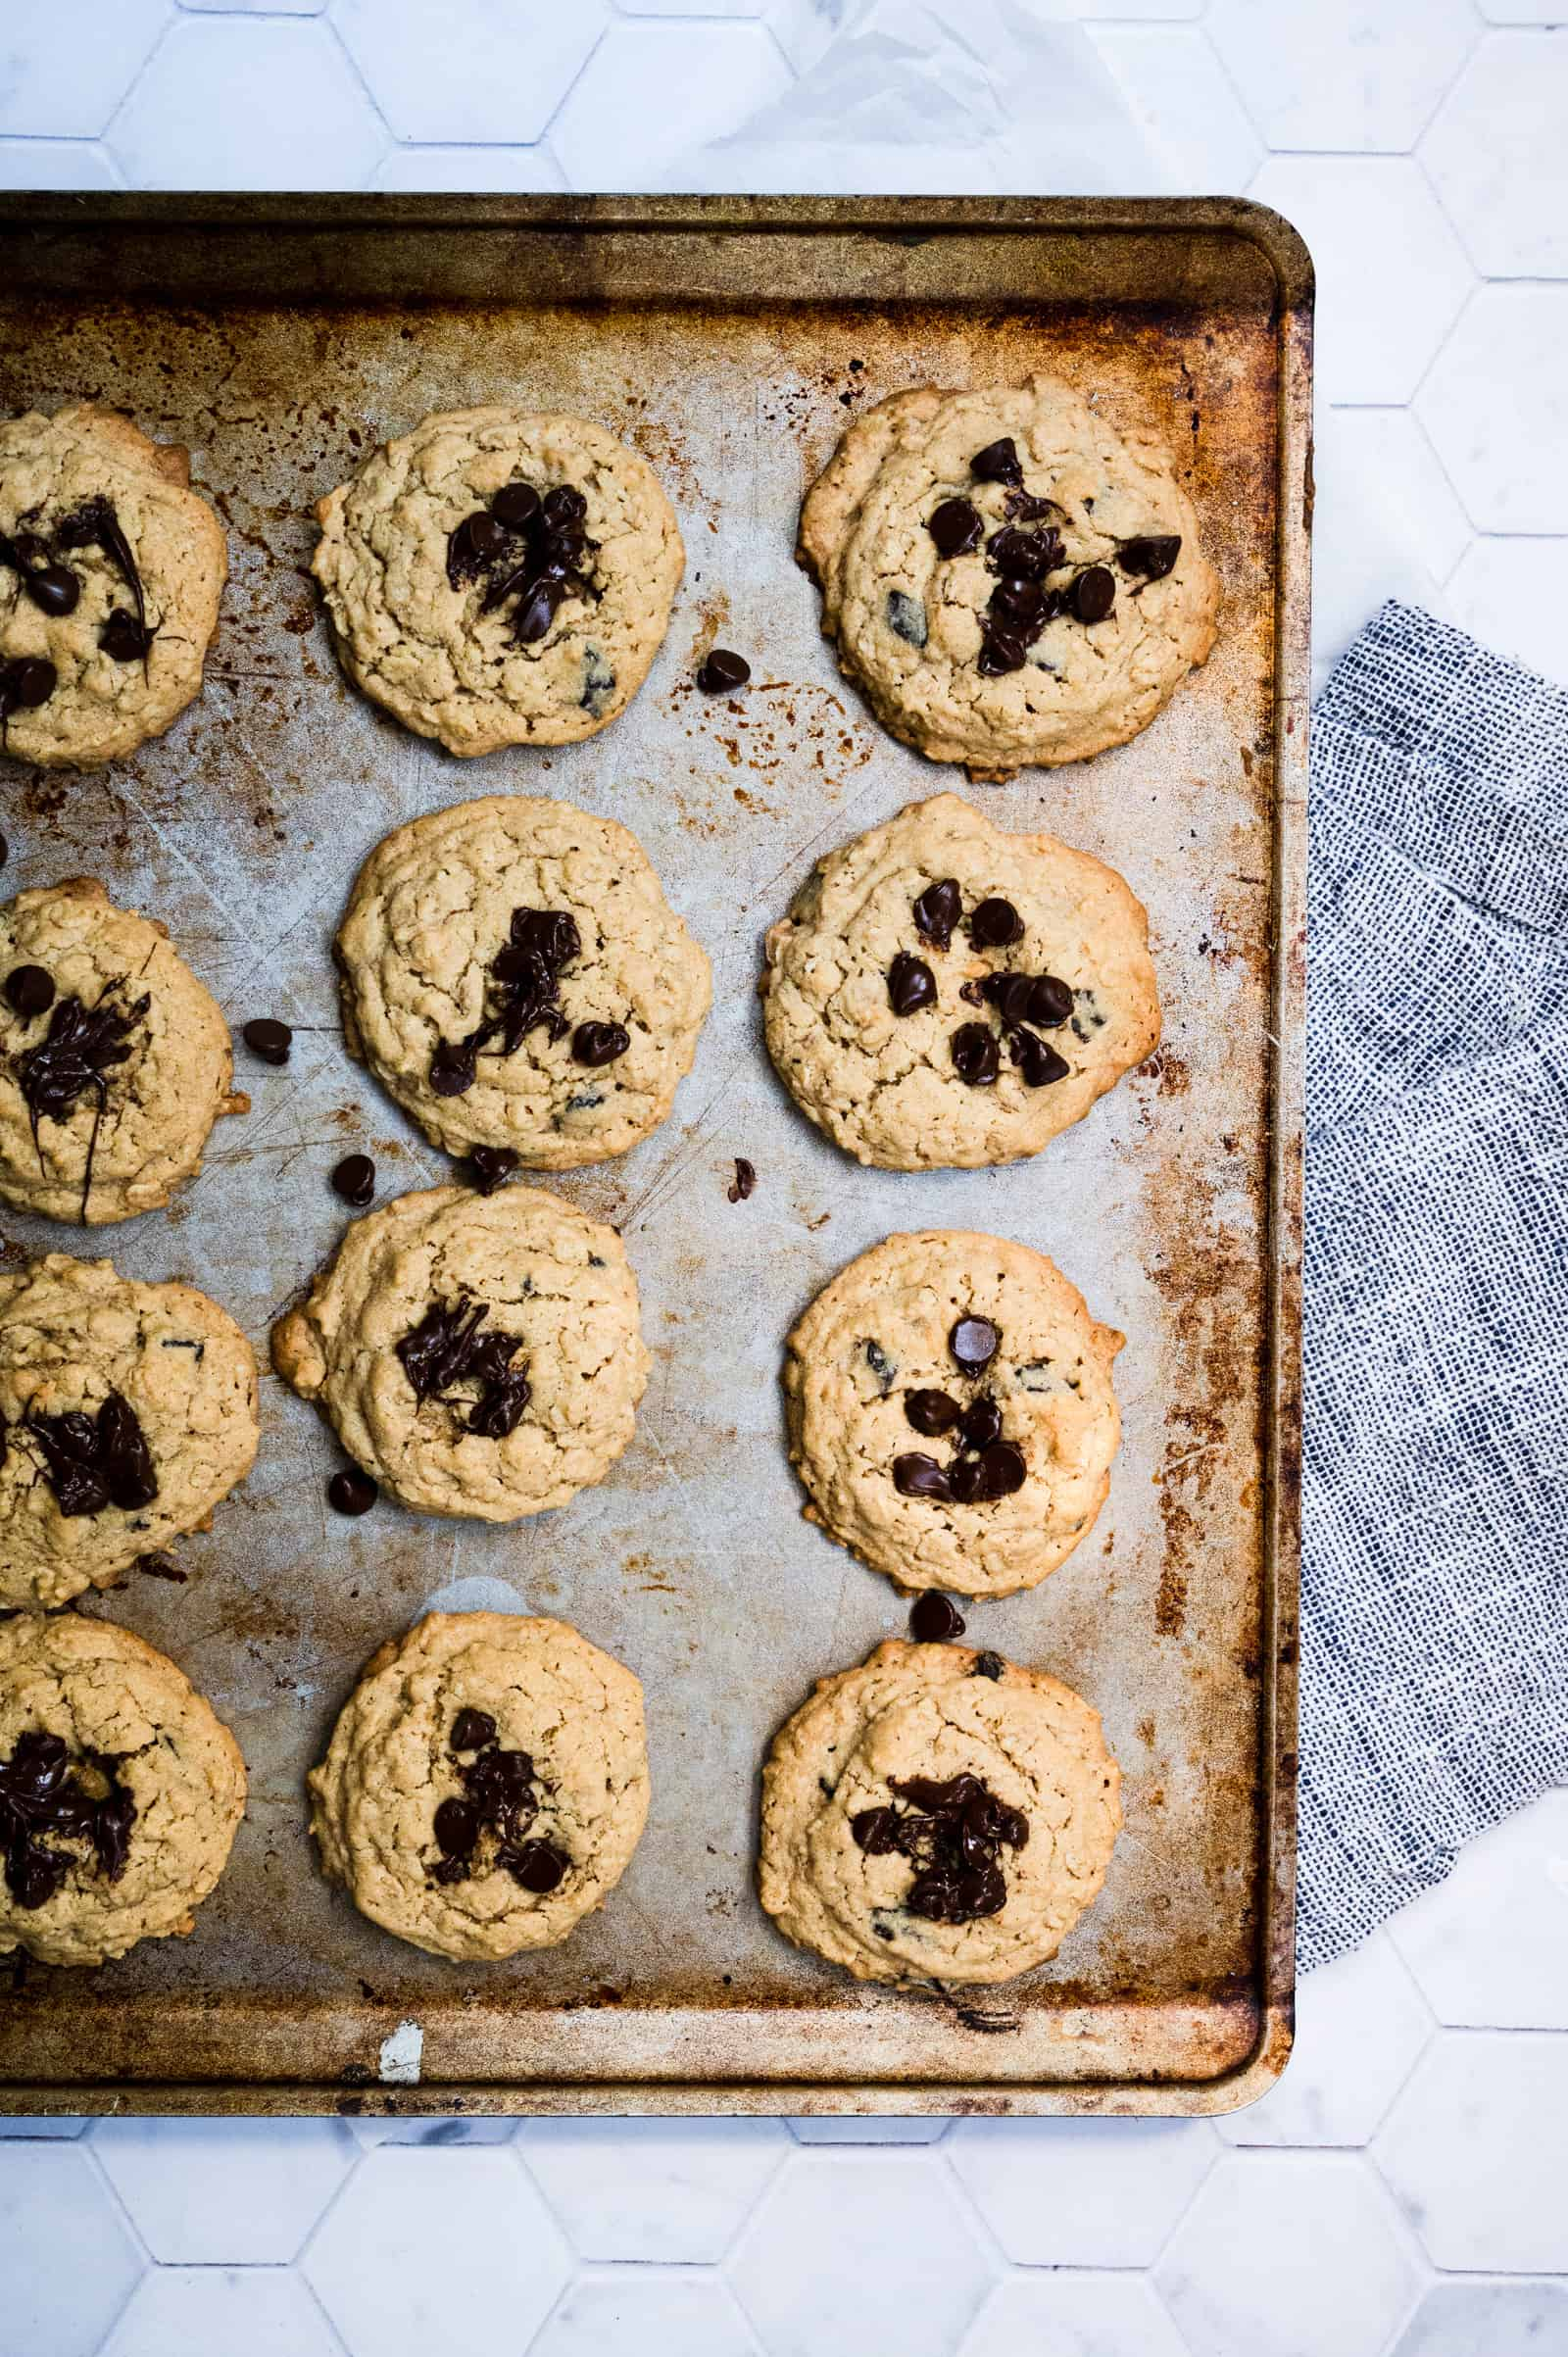 baking sheet of baked oatmeal chocolate chip cookies on a blue and white napkin and marble background